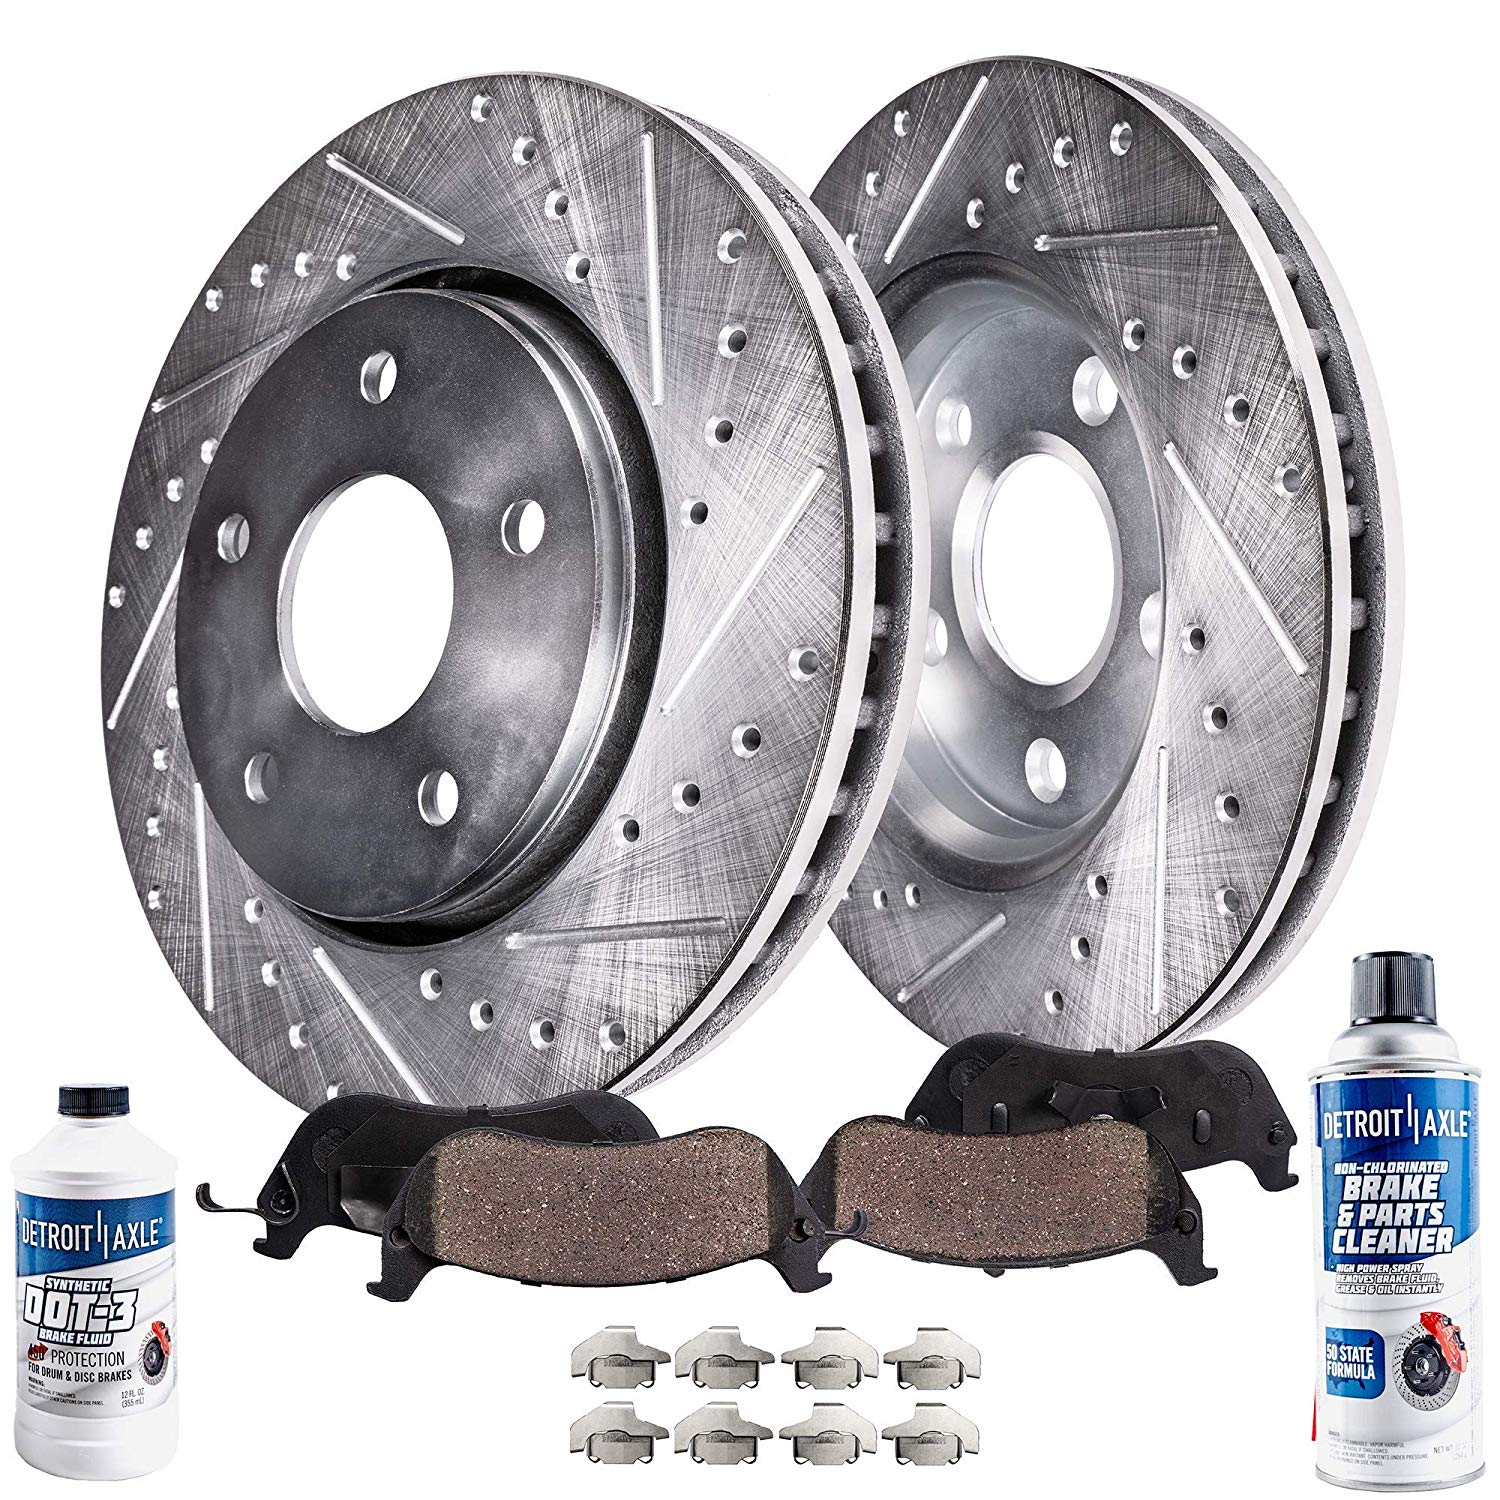 Rotors, Pads For Rav4 2.5L No 3rd Row Seat